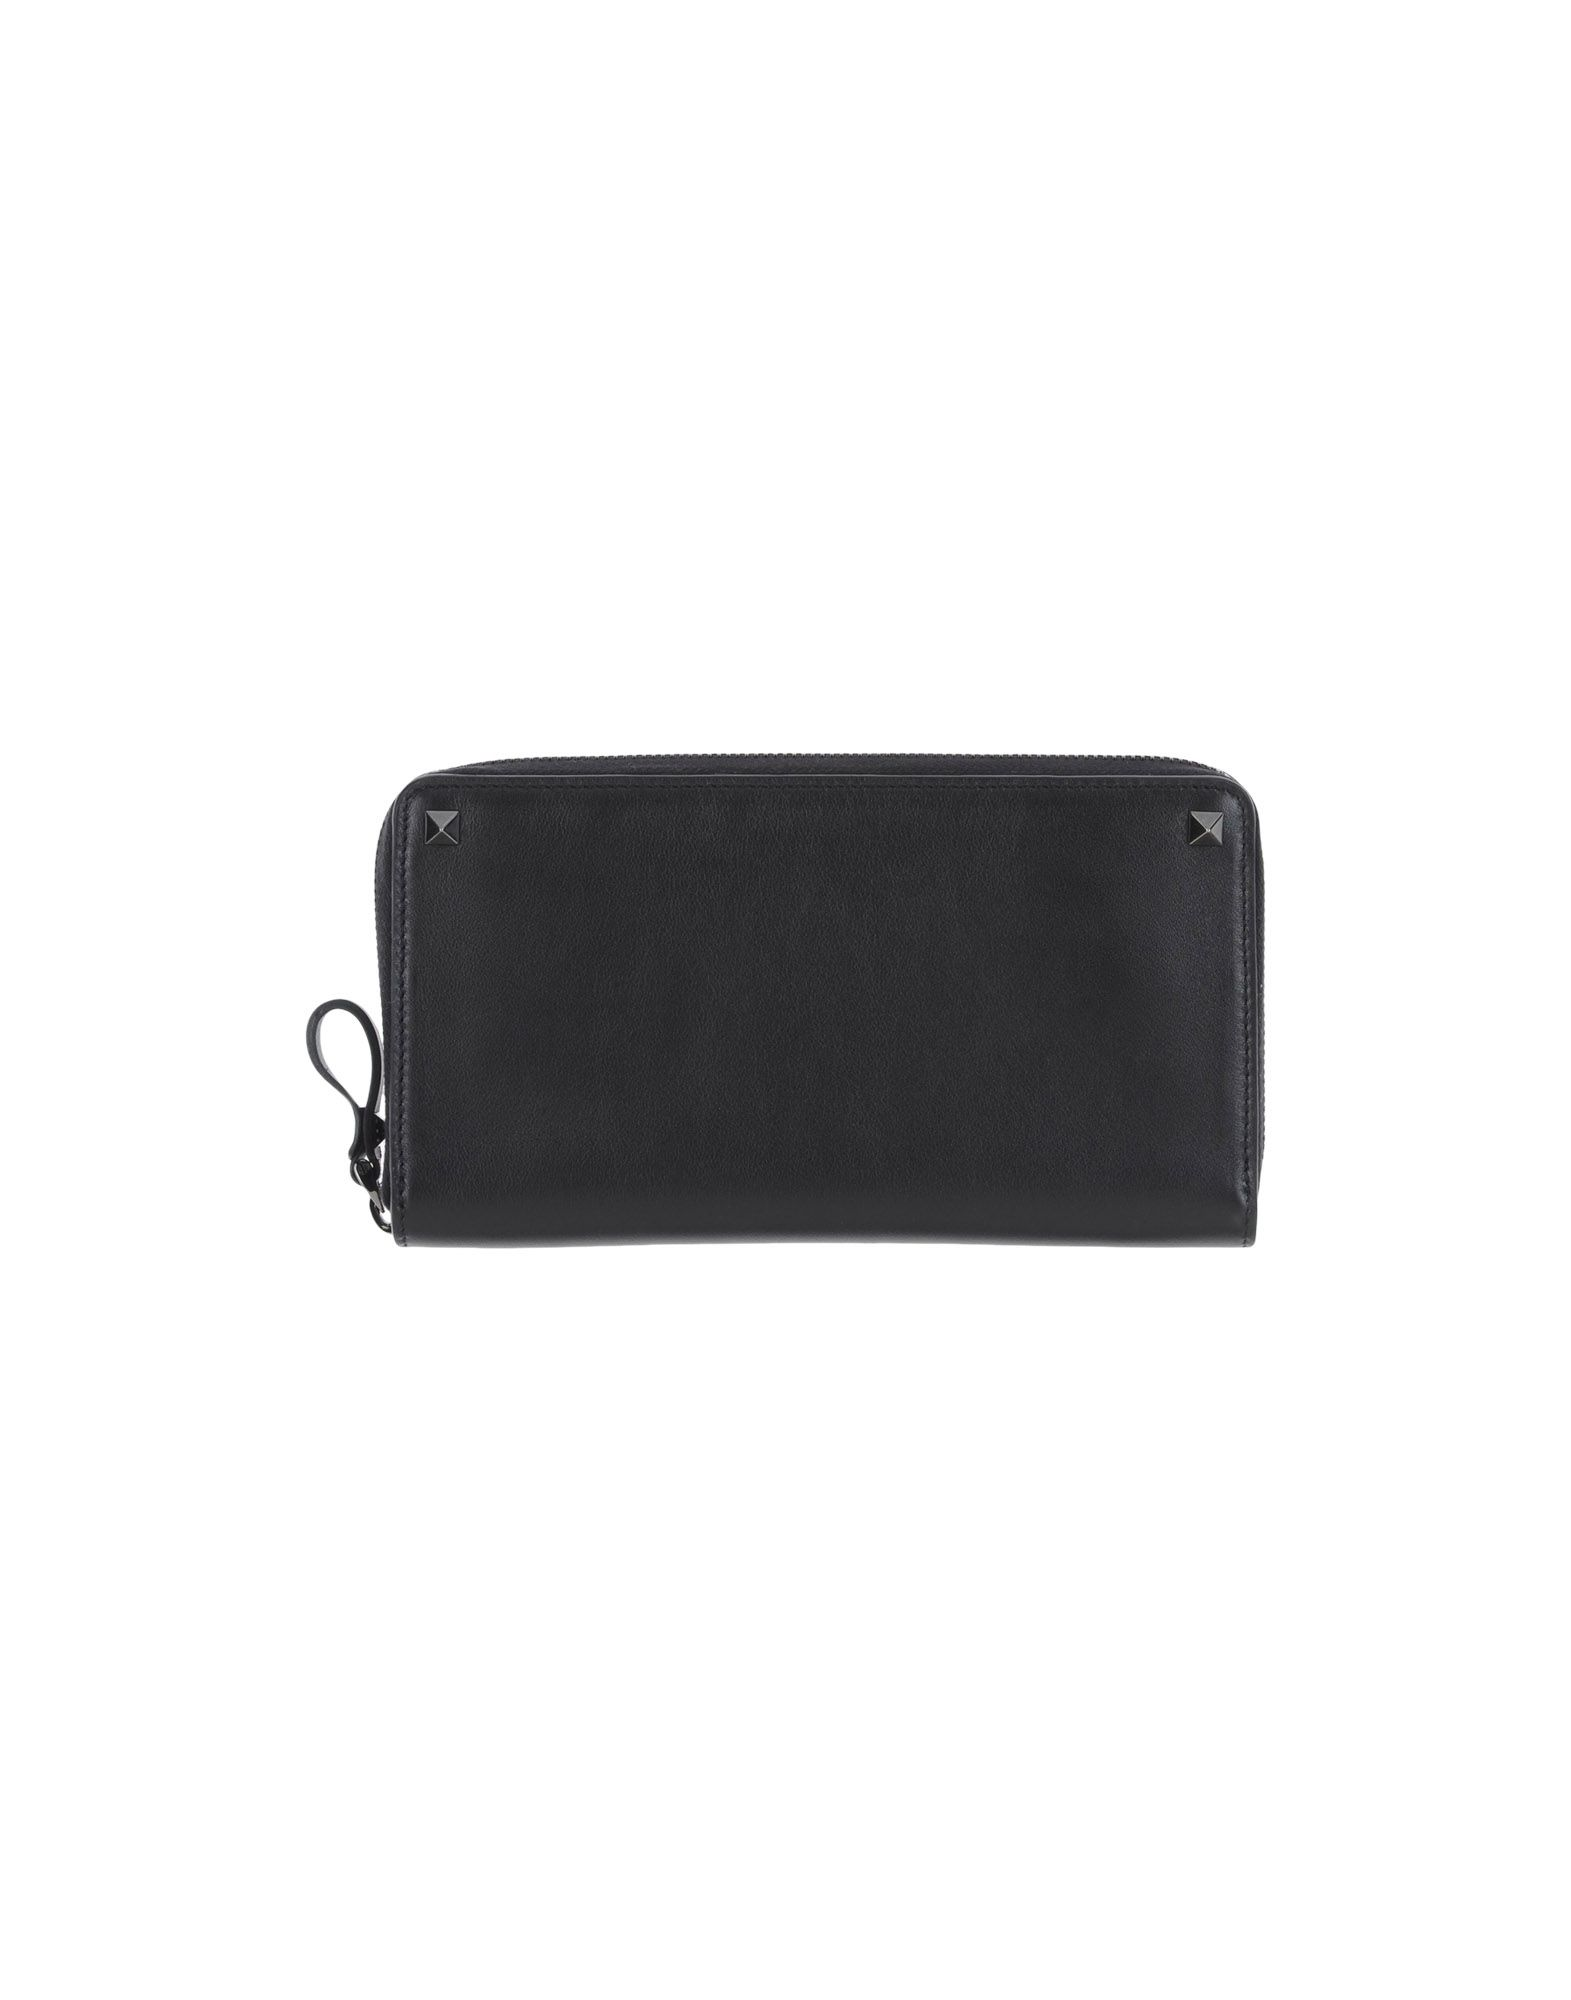 VALENTINO GARAVANI Small Leather Goods Black women Accessories,valentino  bags saks,Best Discount Price